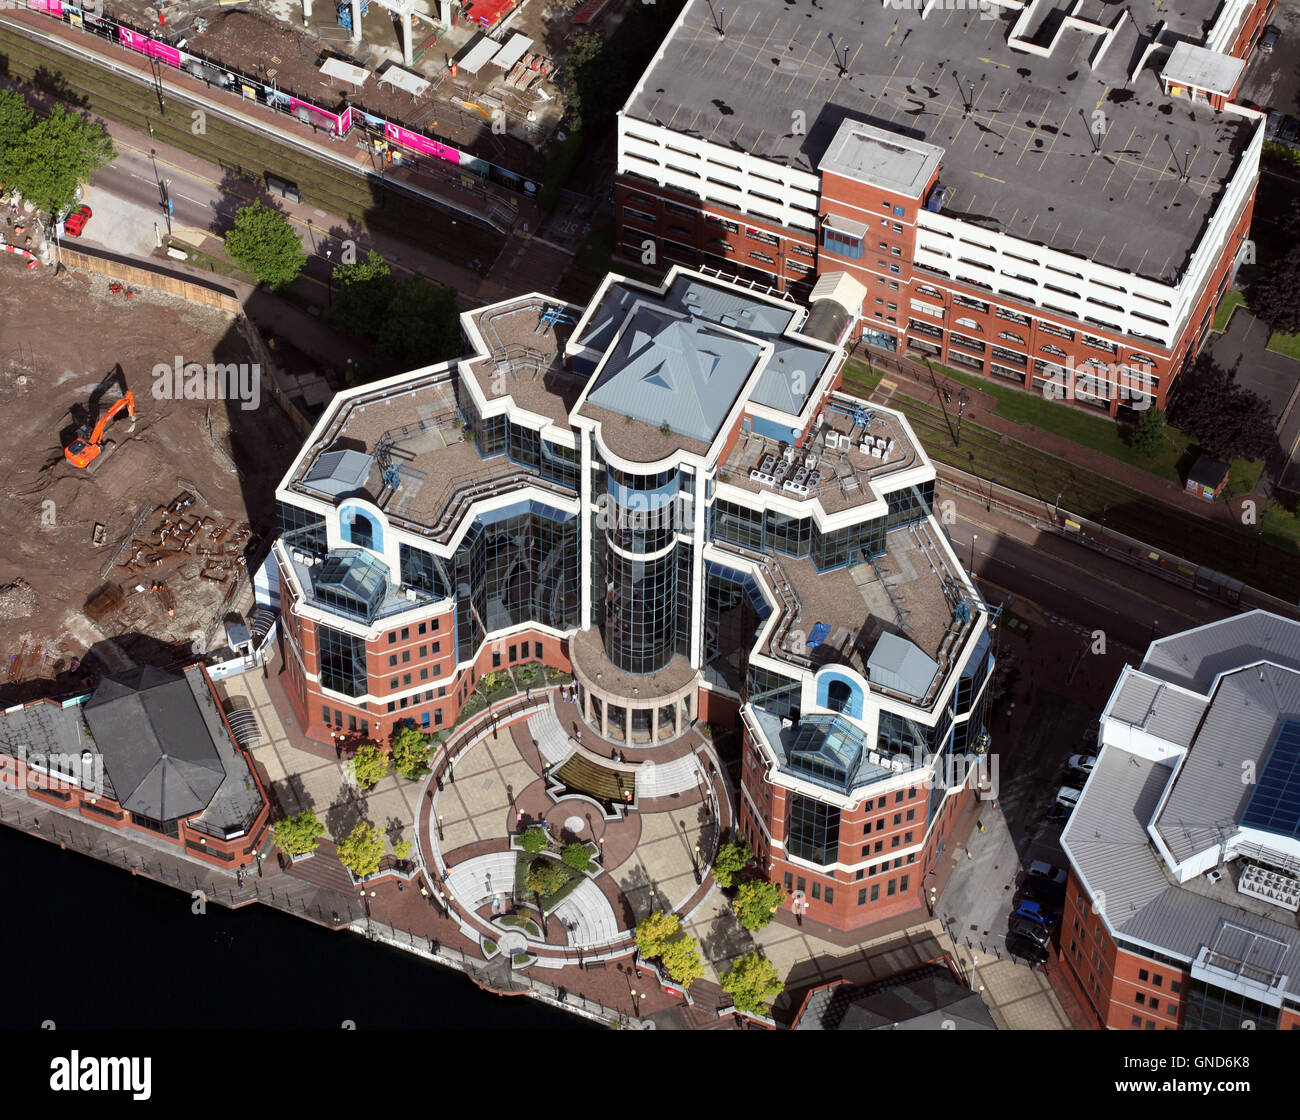 aerial view of the WSP Group plc building at Salford Quays - Stock Image